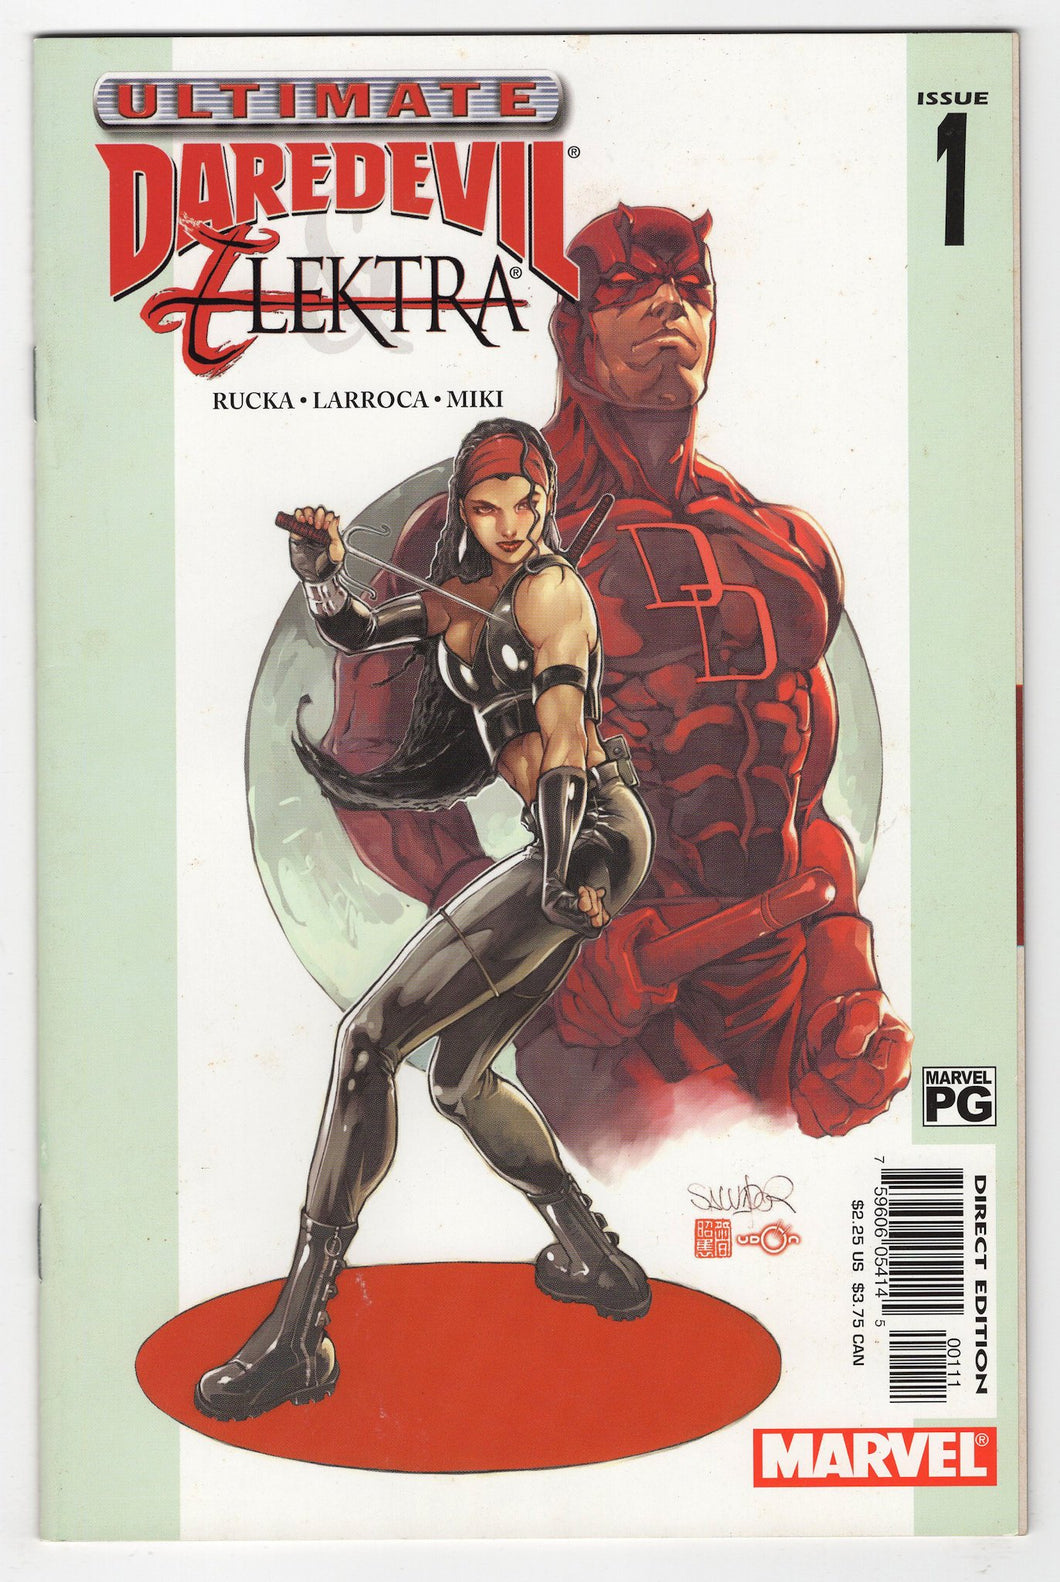 Ultimate Daredevil and Elektra #1 Cover Front